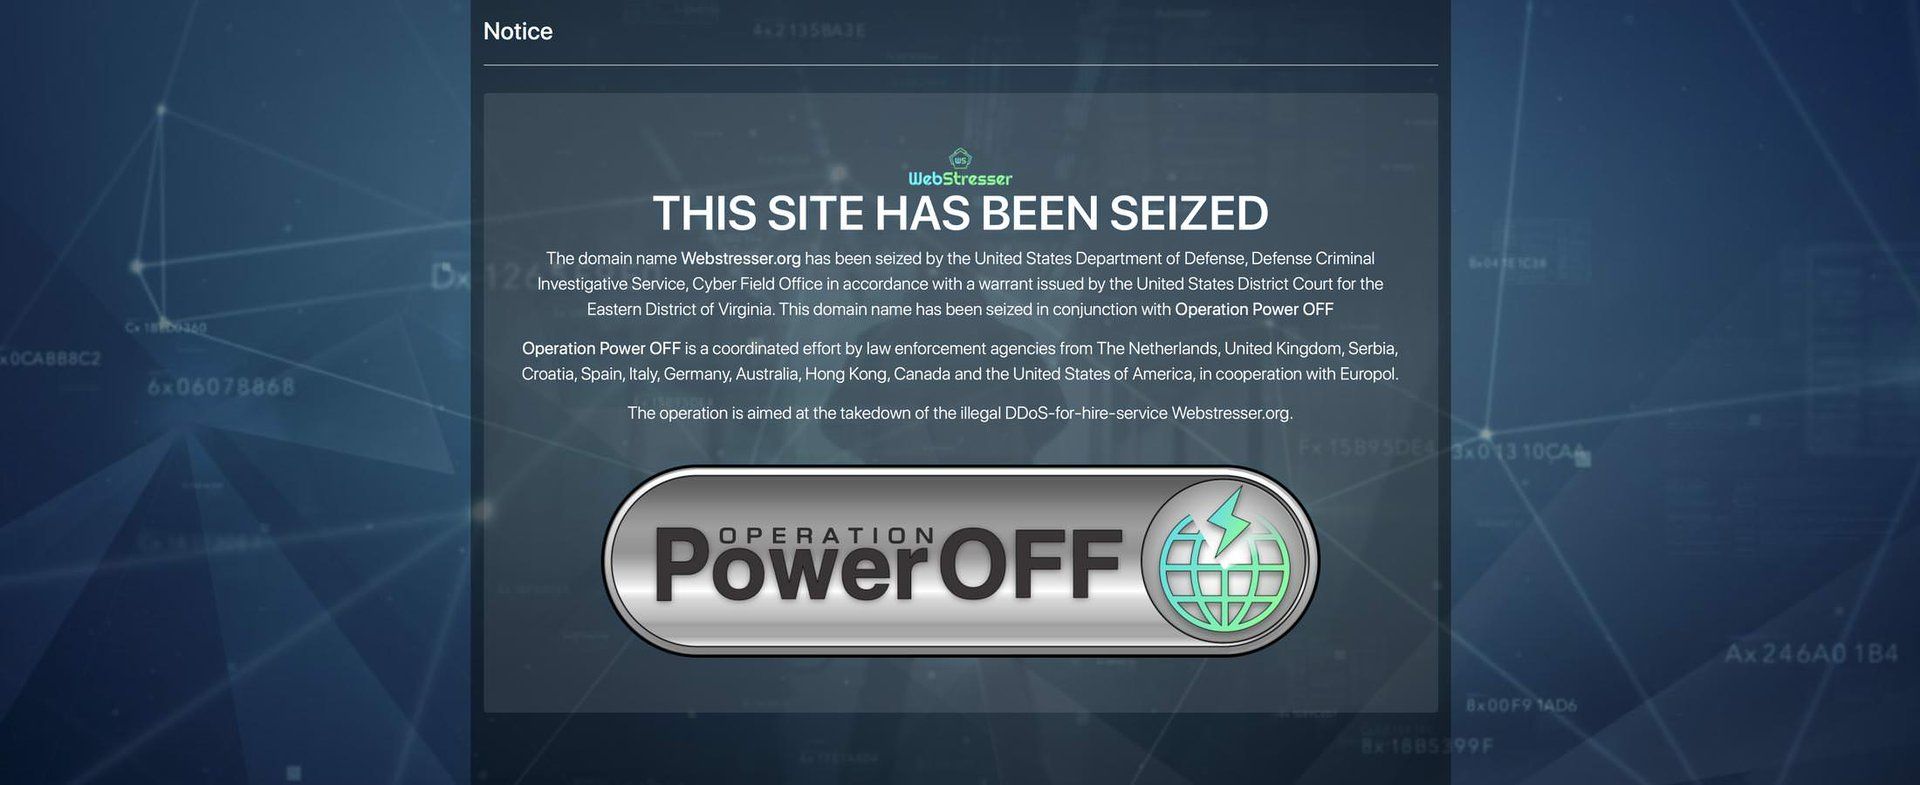 WebStresser org seized by the United States Department of